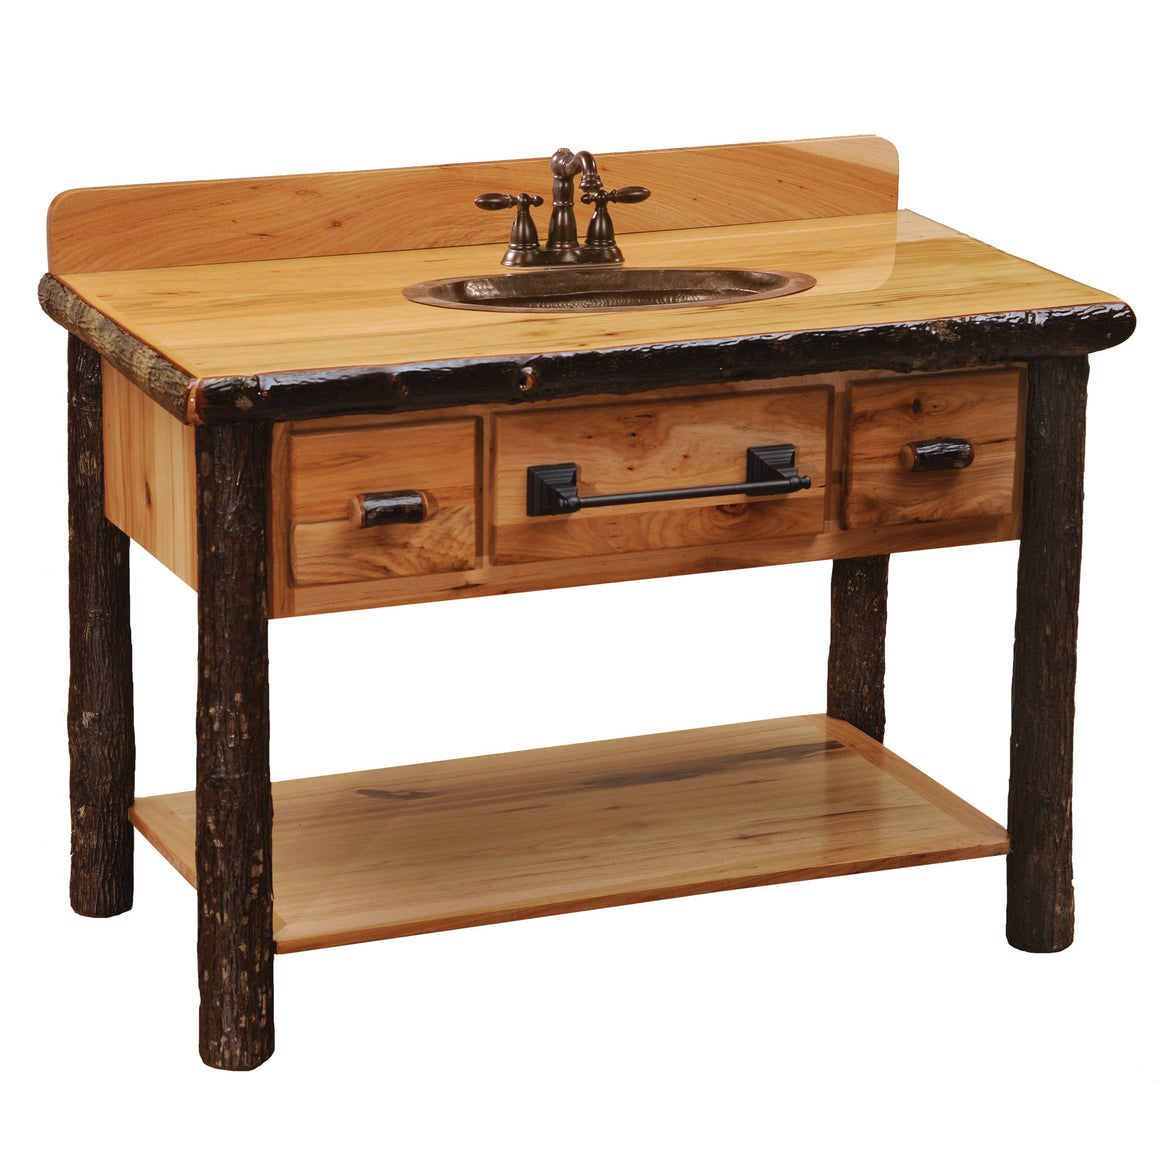 Hickory Freestanding Open Vanity with Shelf - Drawers - Slab Top Glass Finish - Rustic Deco Incorporated